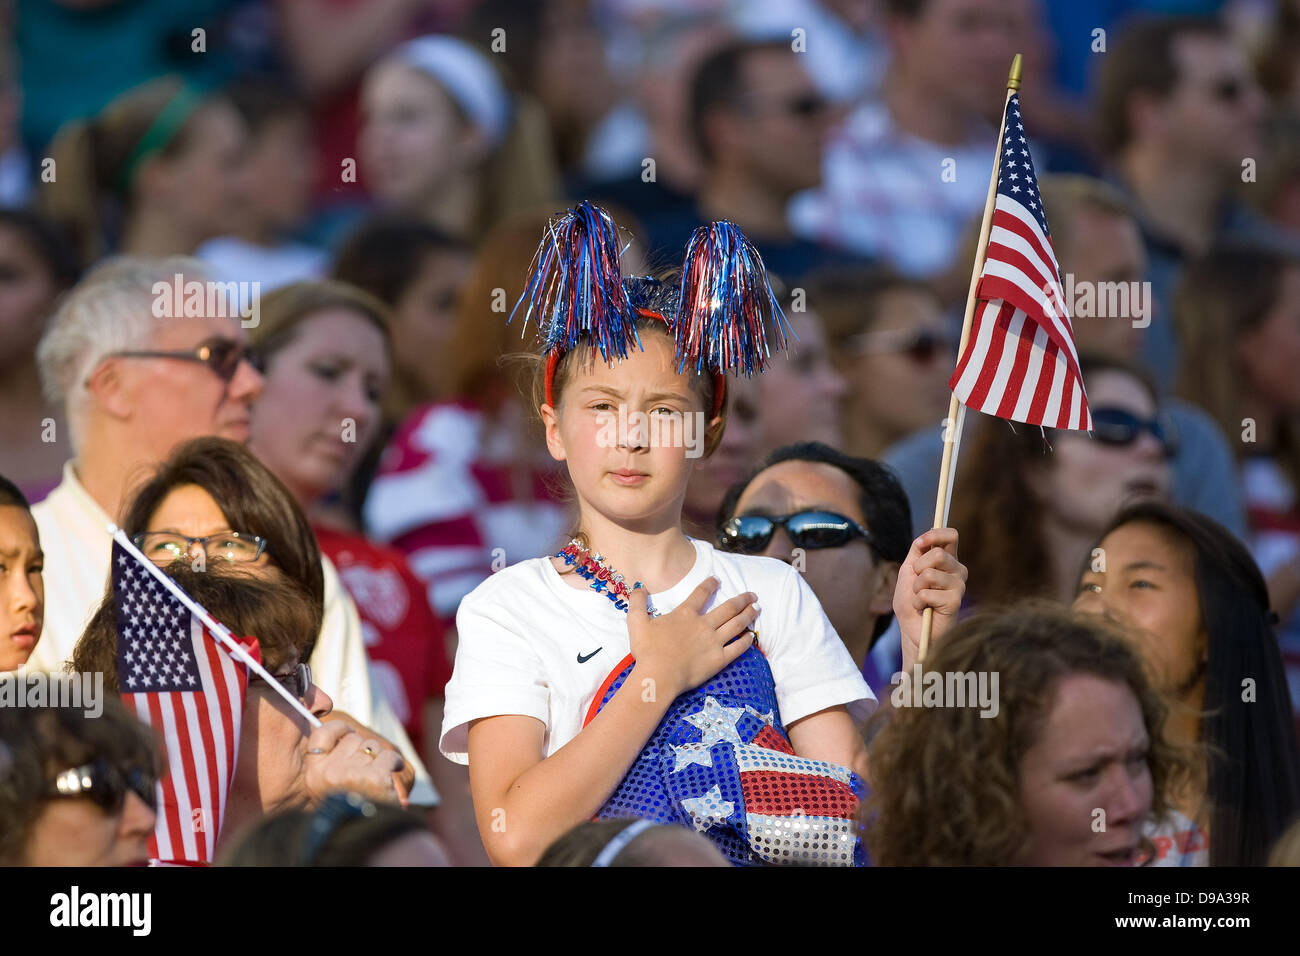 Foxborough, Massachusetts, United States. 15th June, 2013. A USA fan during the National Anthem prior to the international - Stock Image